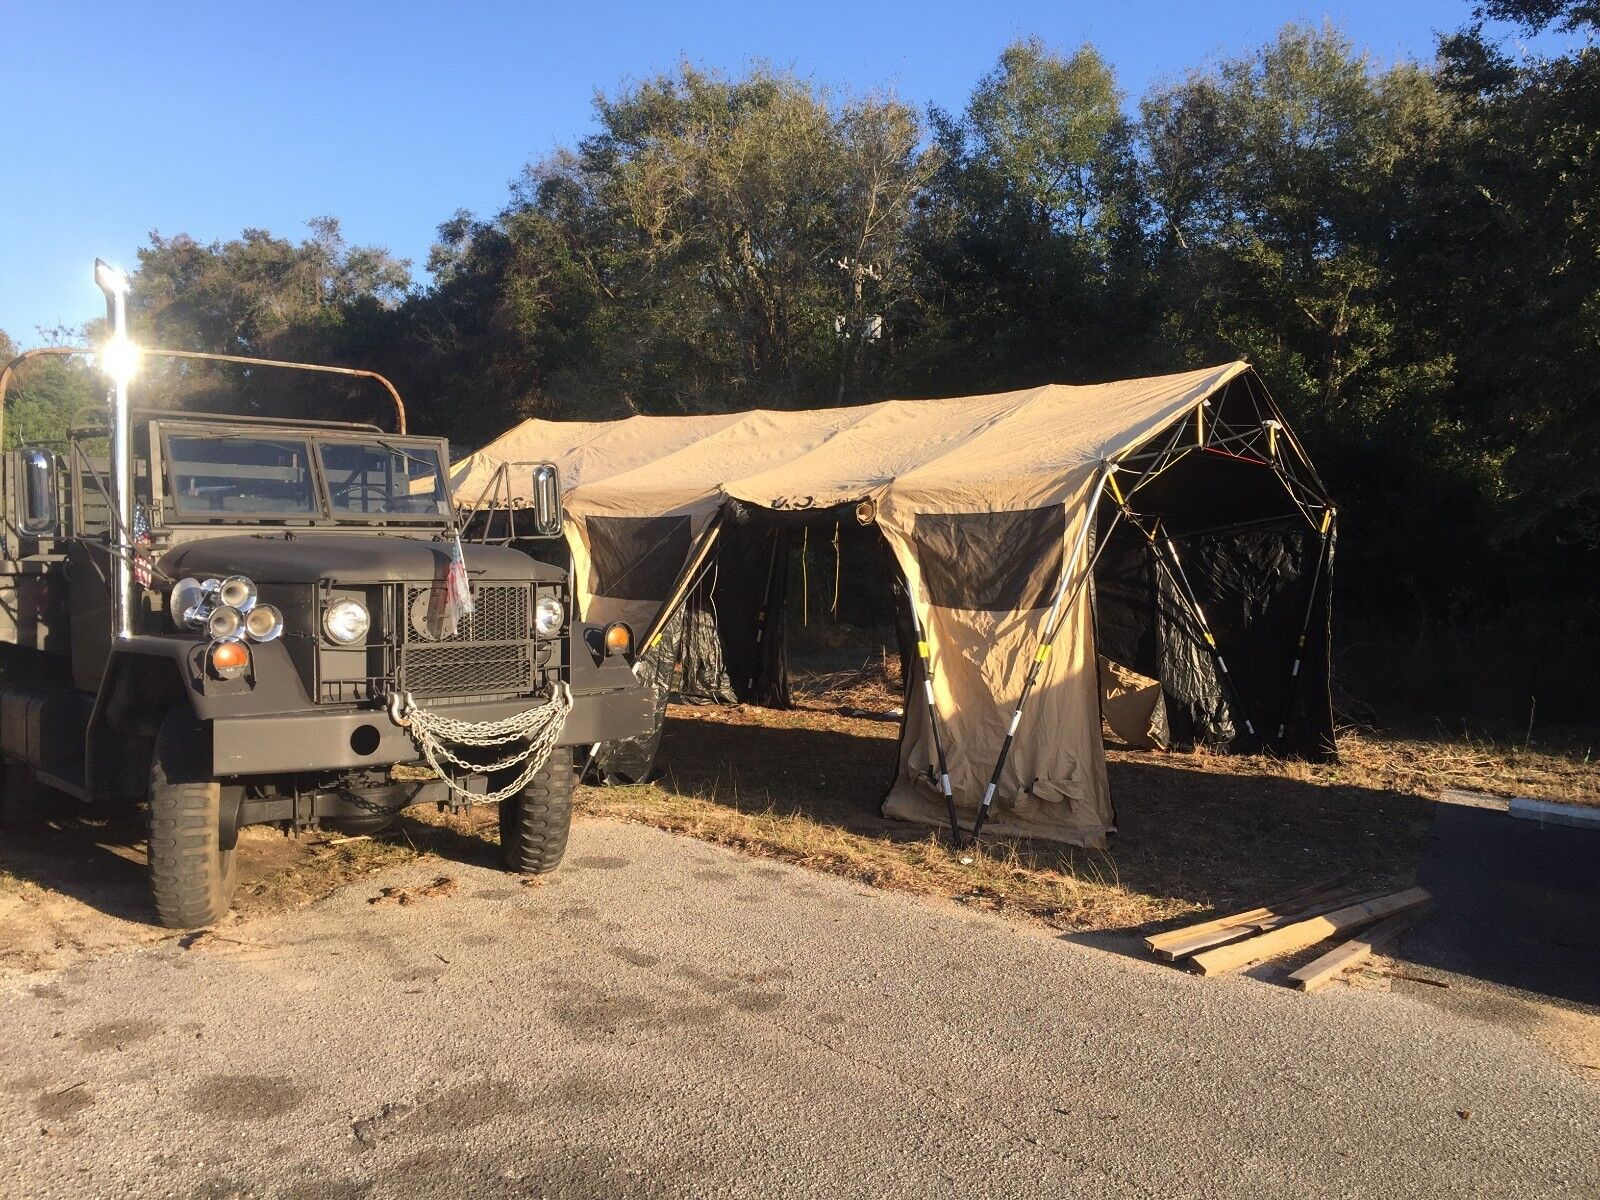 U S  Military Army Tent-Base X 305 Shelter System 18X25' Tan HDT Global  FAST-UP | Shopping Bin - Search eBay faster